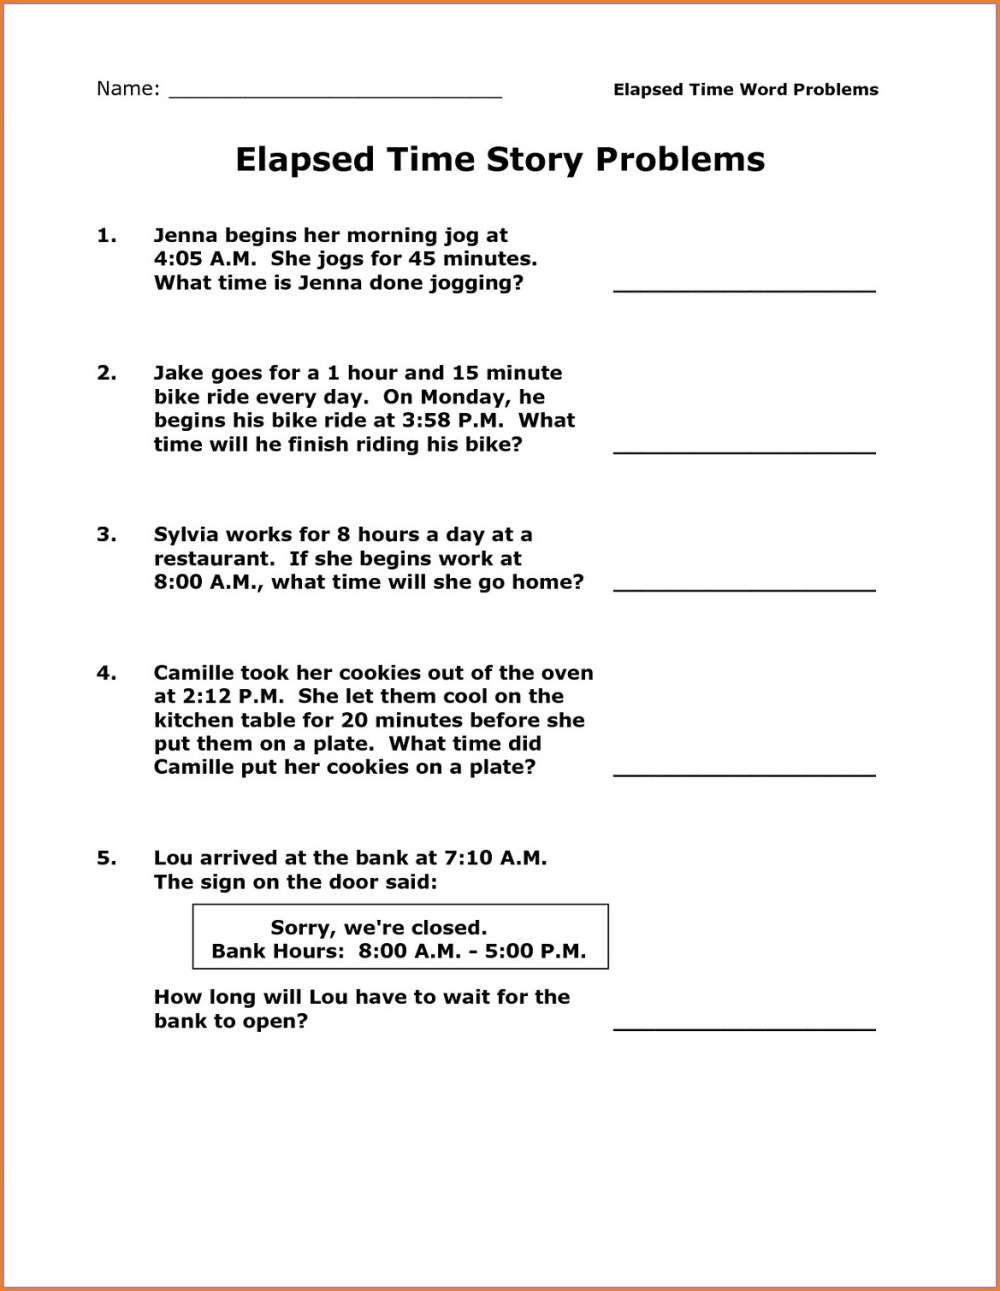 medium resolution of Finding Elapsed Time Worksheet   Printable Worksheets and Activities for  Teachers